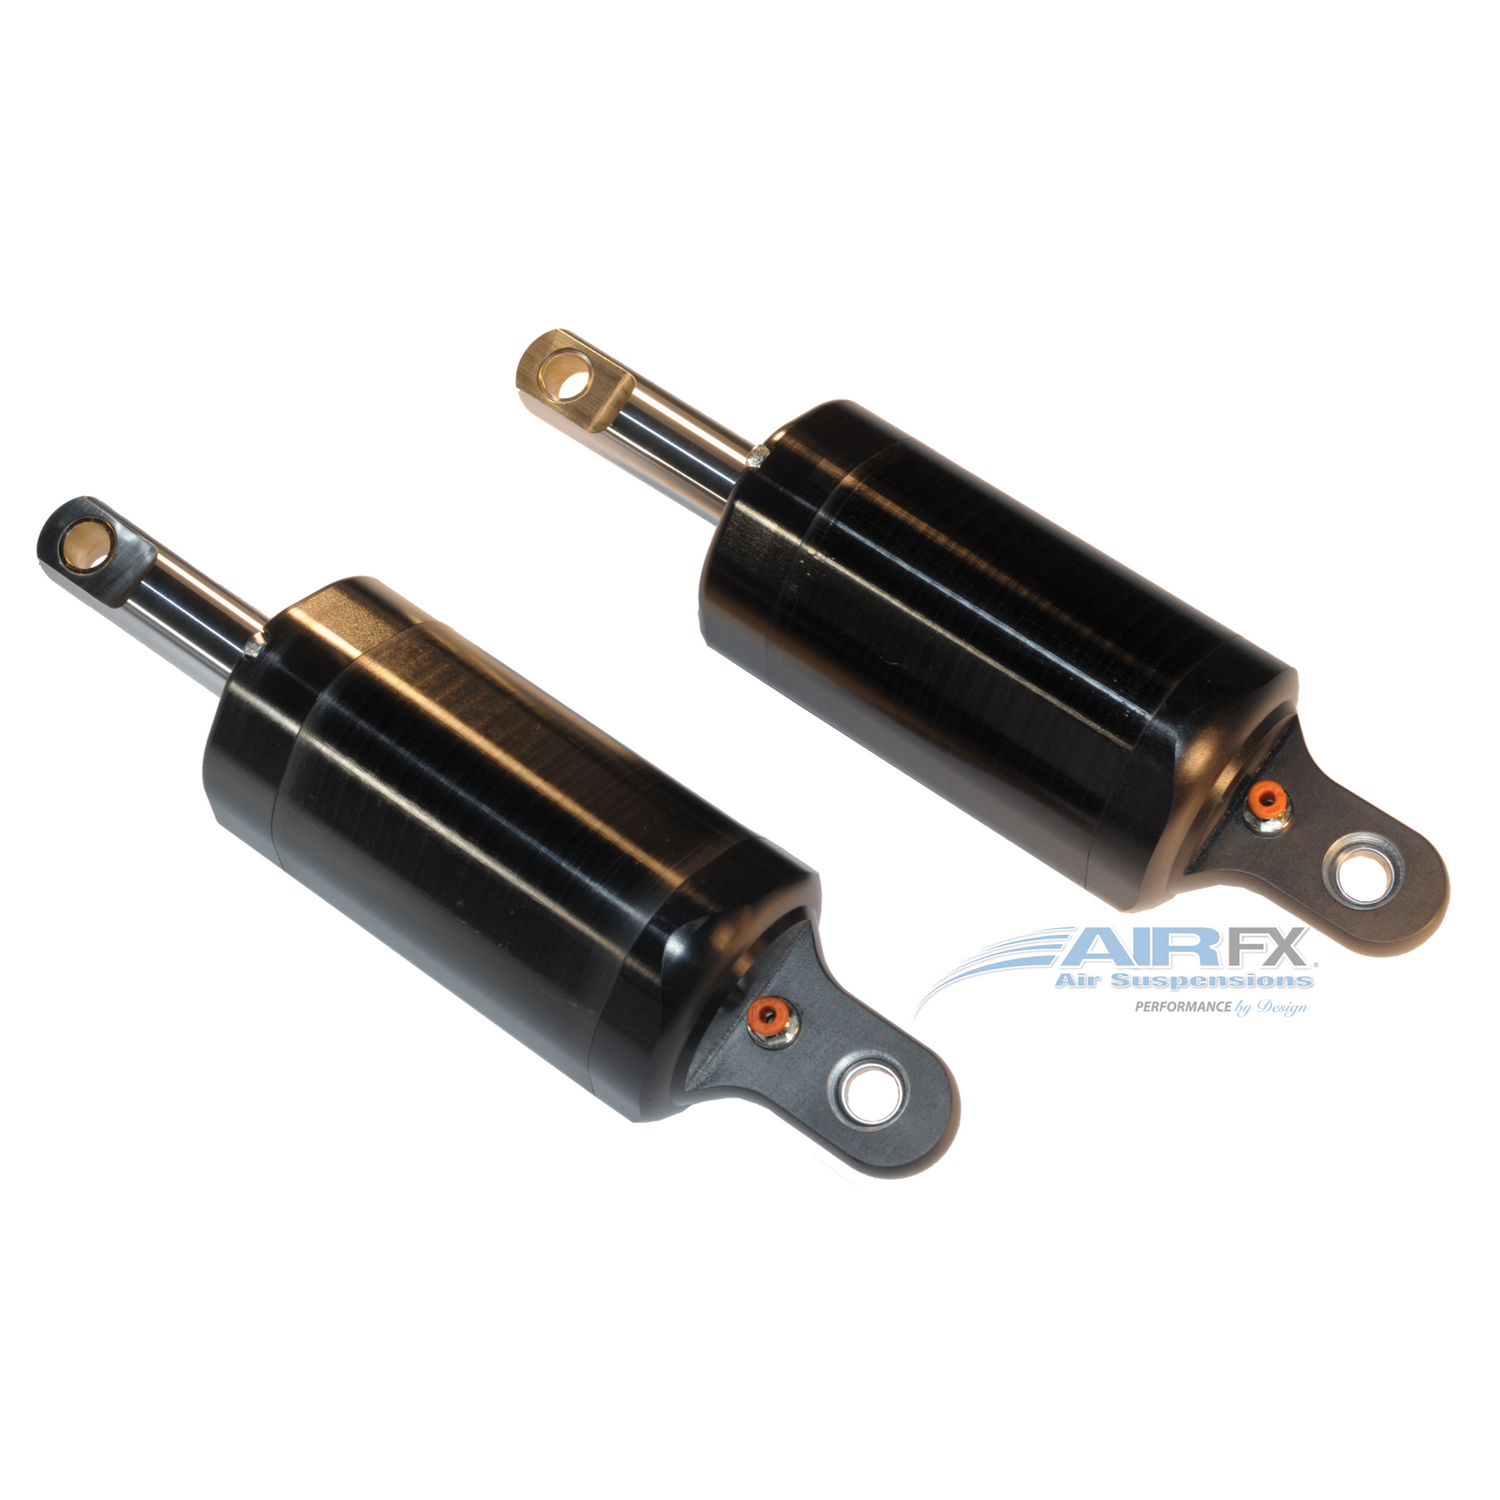 Rear magnum shock pair with black hardcoat anodized finish, 10-13 inch pin to pin travel. Fits 2000-2018 Harley FL/Touring, stock stroke - FXA-2009-B [+$900.00]